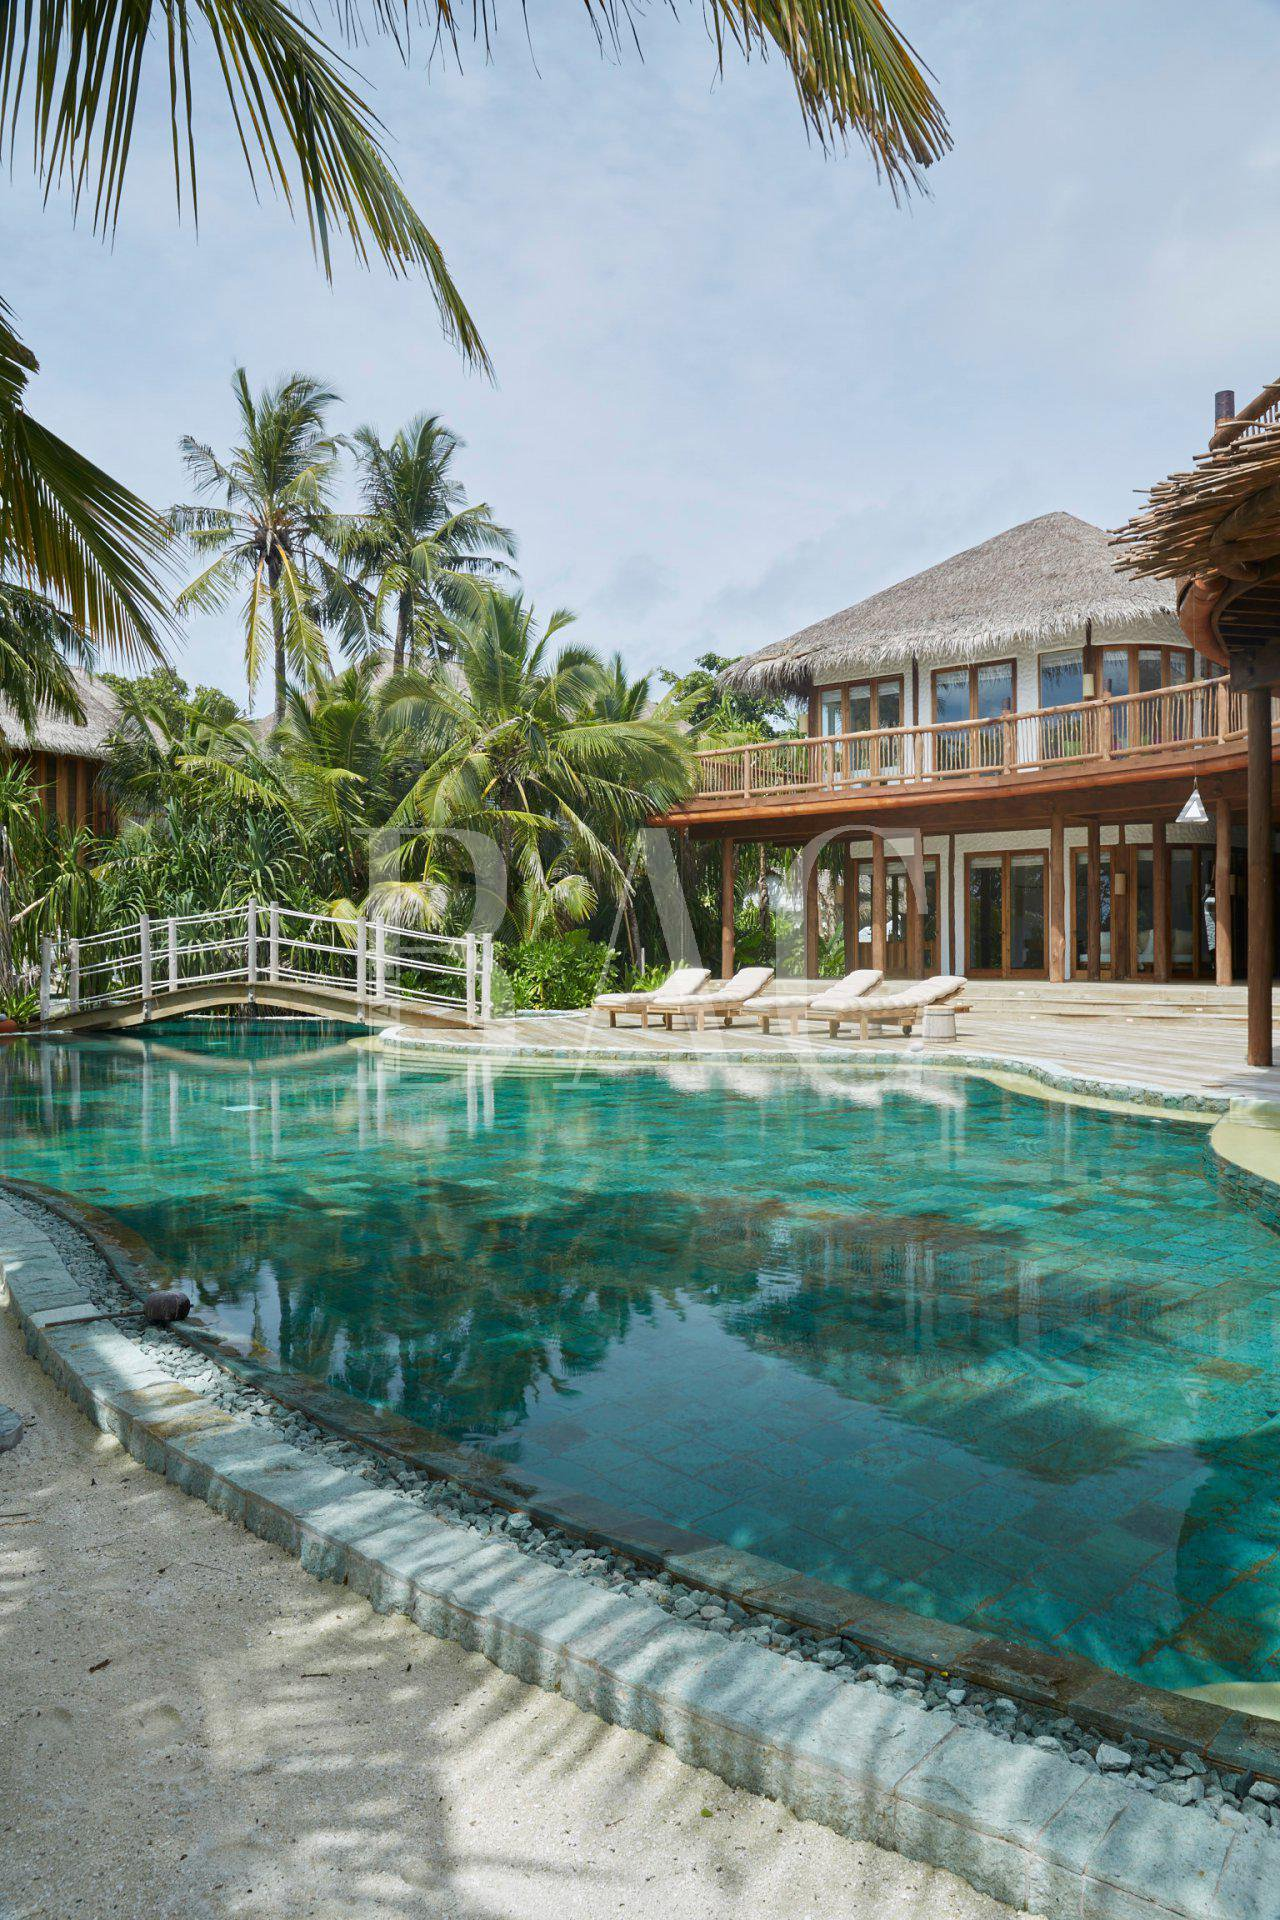 6 bedroom villa on an island in the Maldives